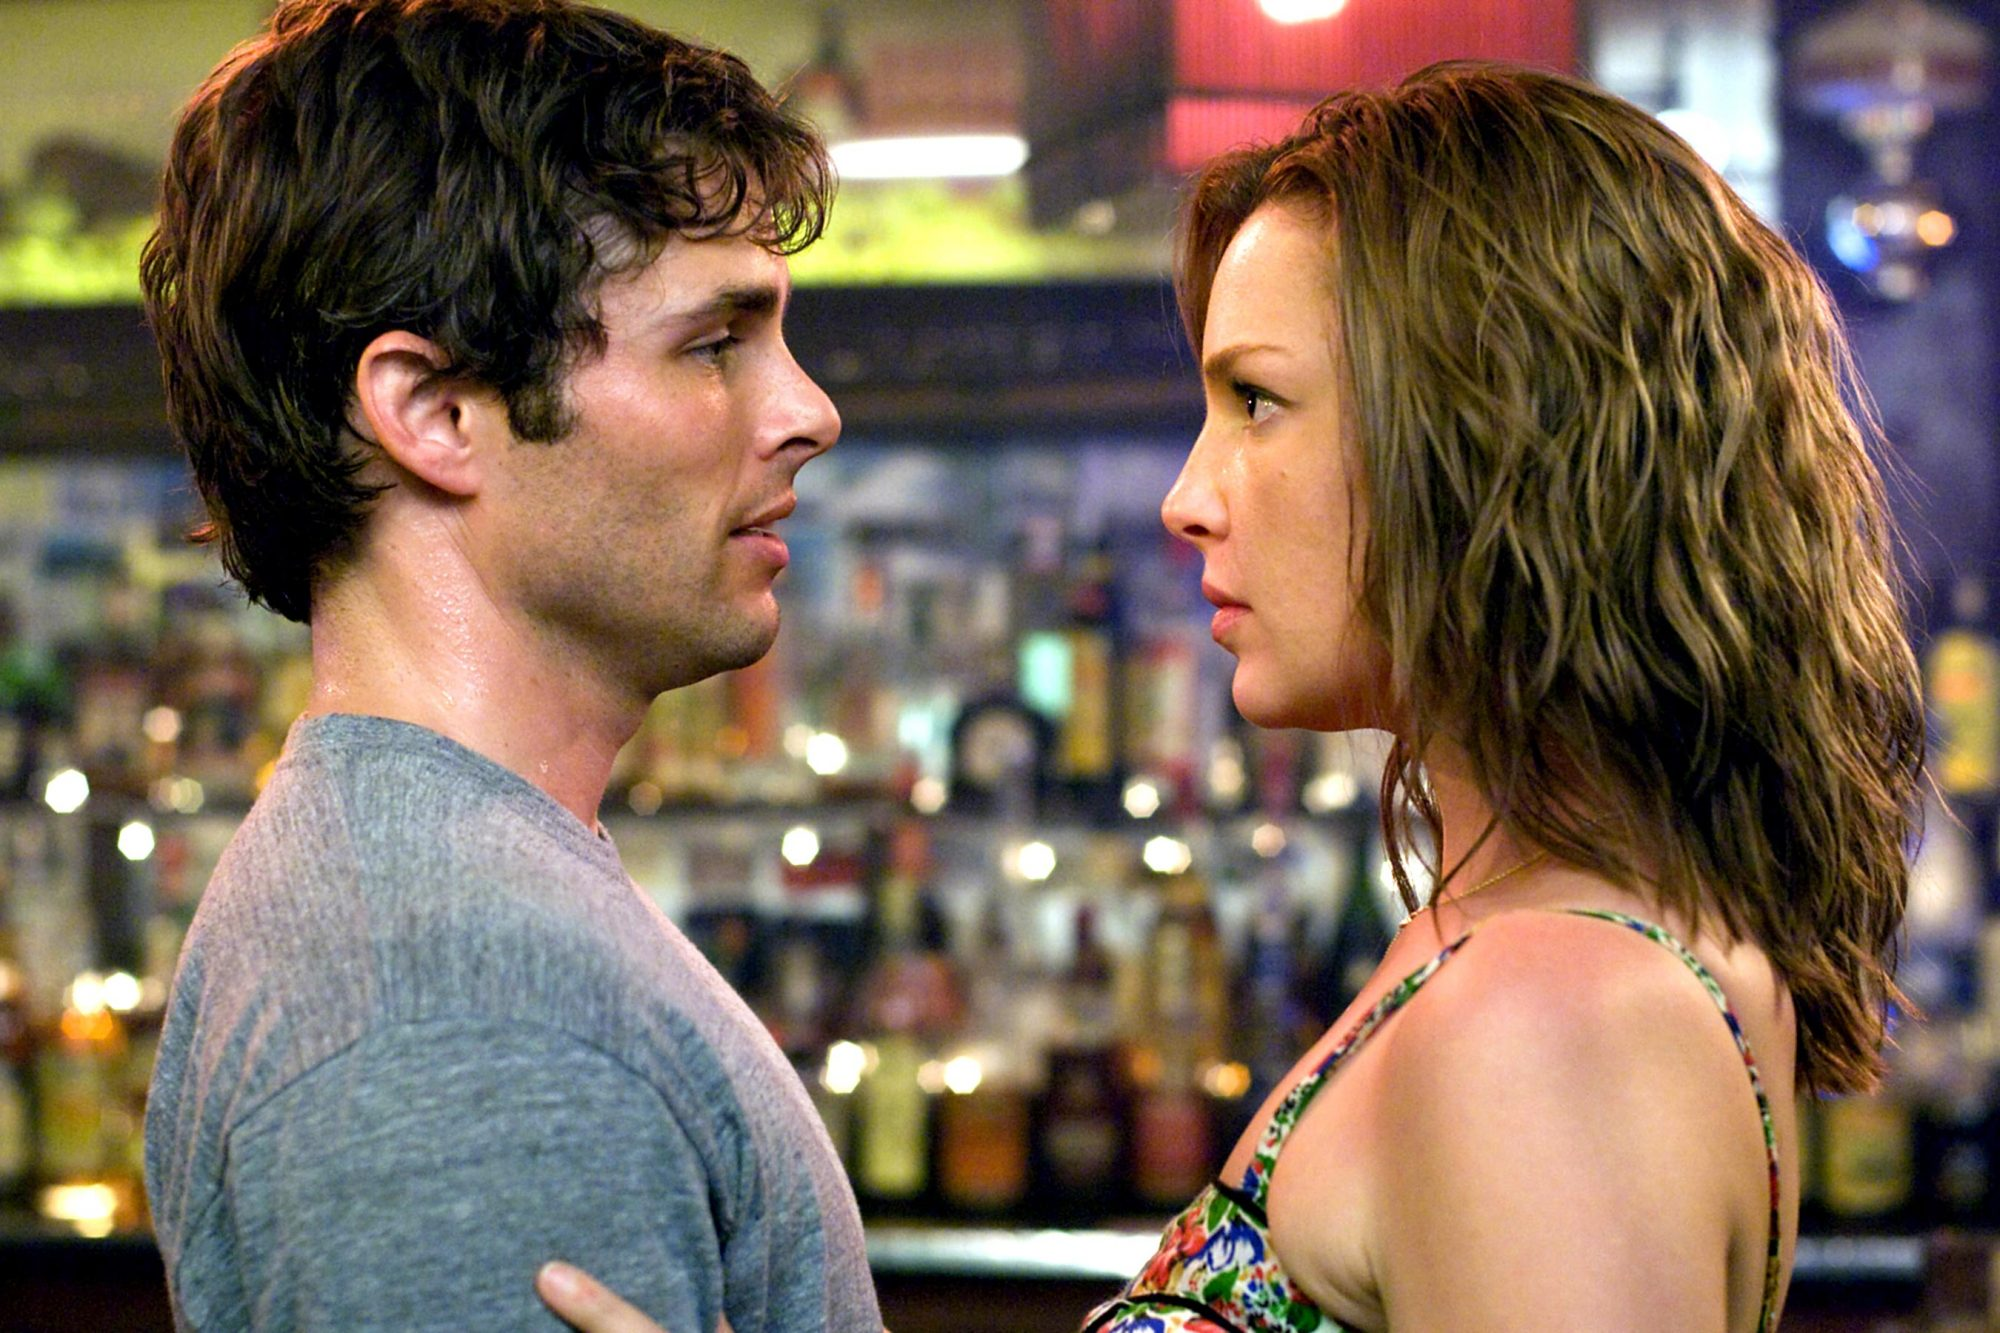 27 DRESSES, James Marsden, Katherine Heigl, 2008. TM &©20th Century Fox. All rights reserved/courtes